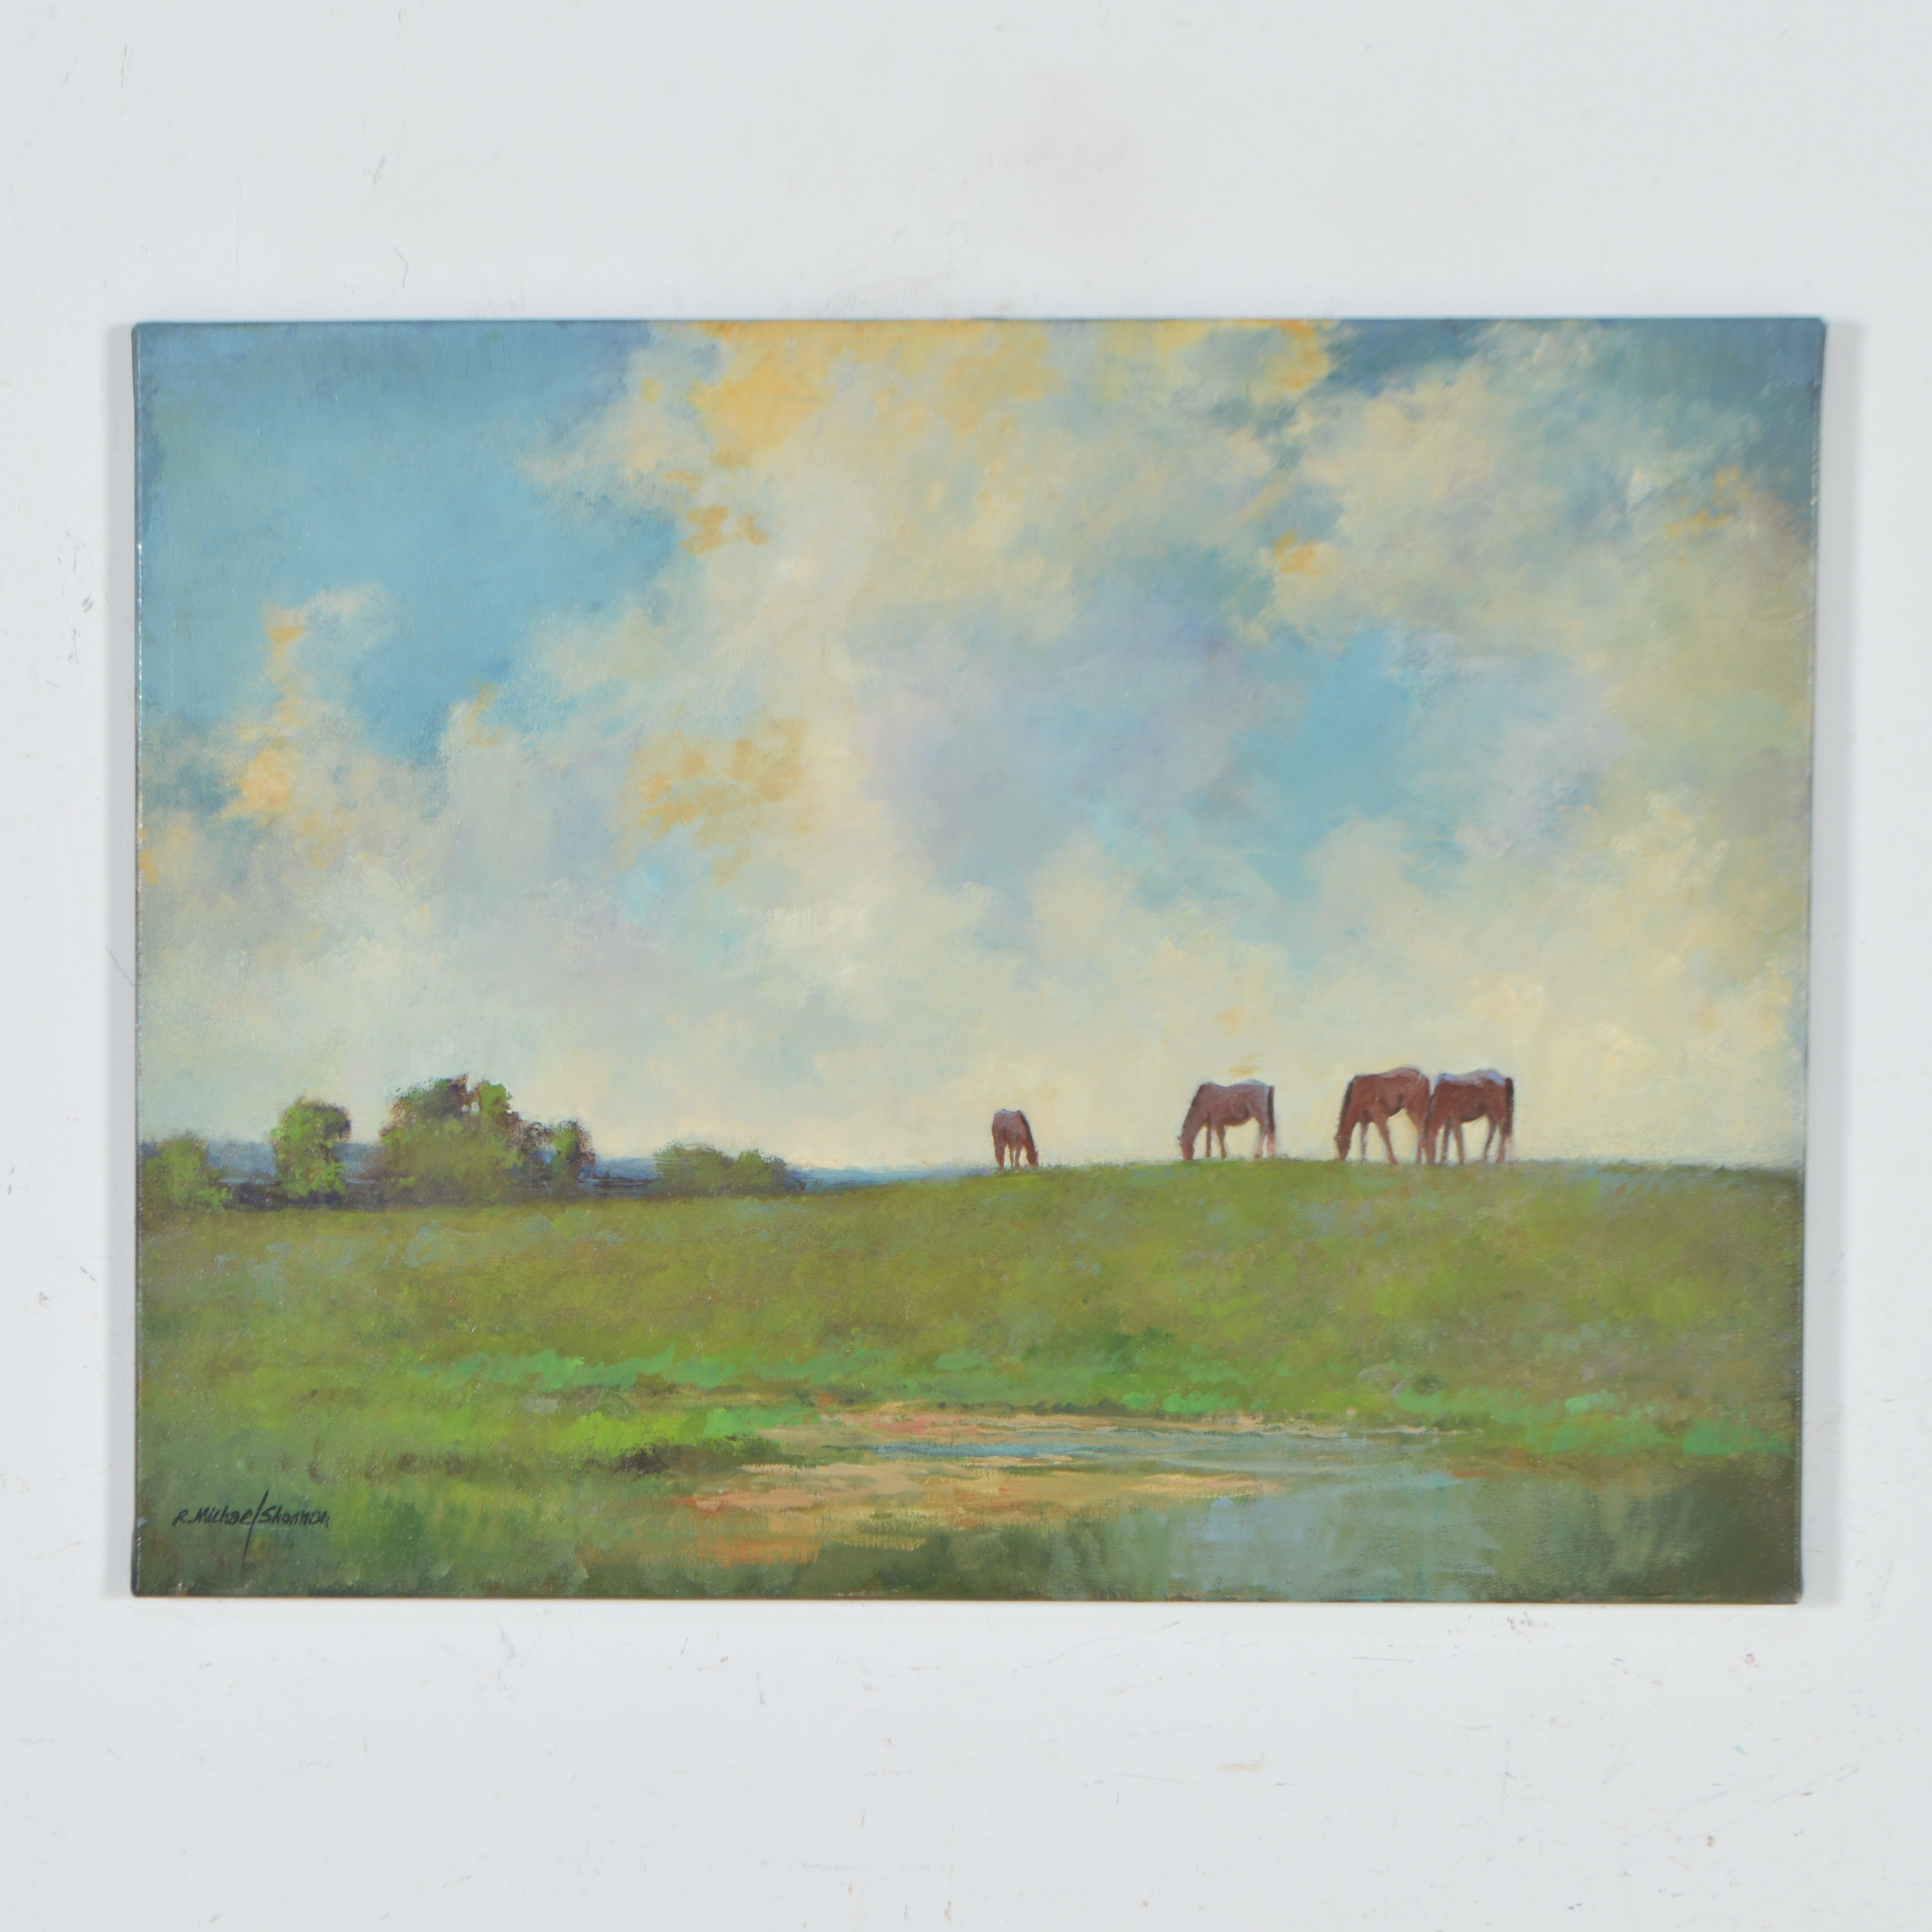 R. Michael Shannon Oil Painting of Horses